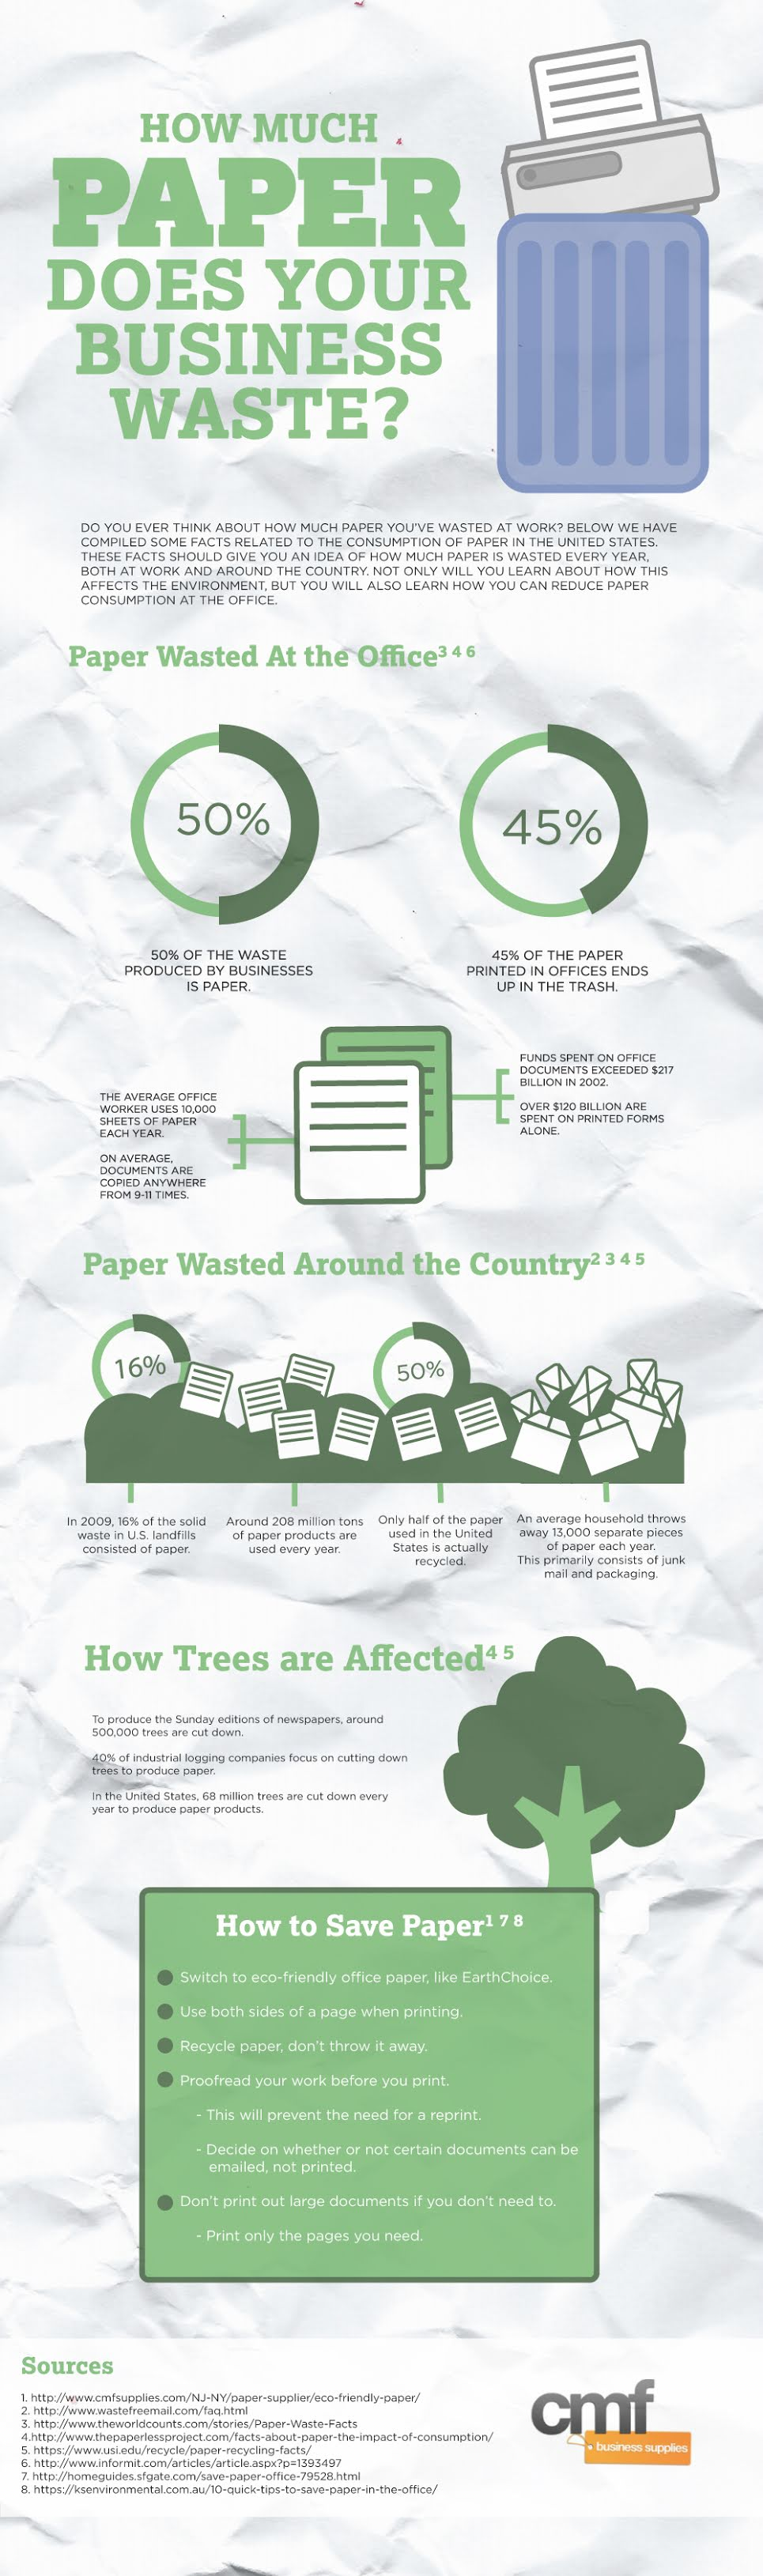 How Much Paper Does Your Business Waste? #infographic #Business #Paper Waste #infographics #Business Waste